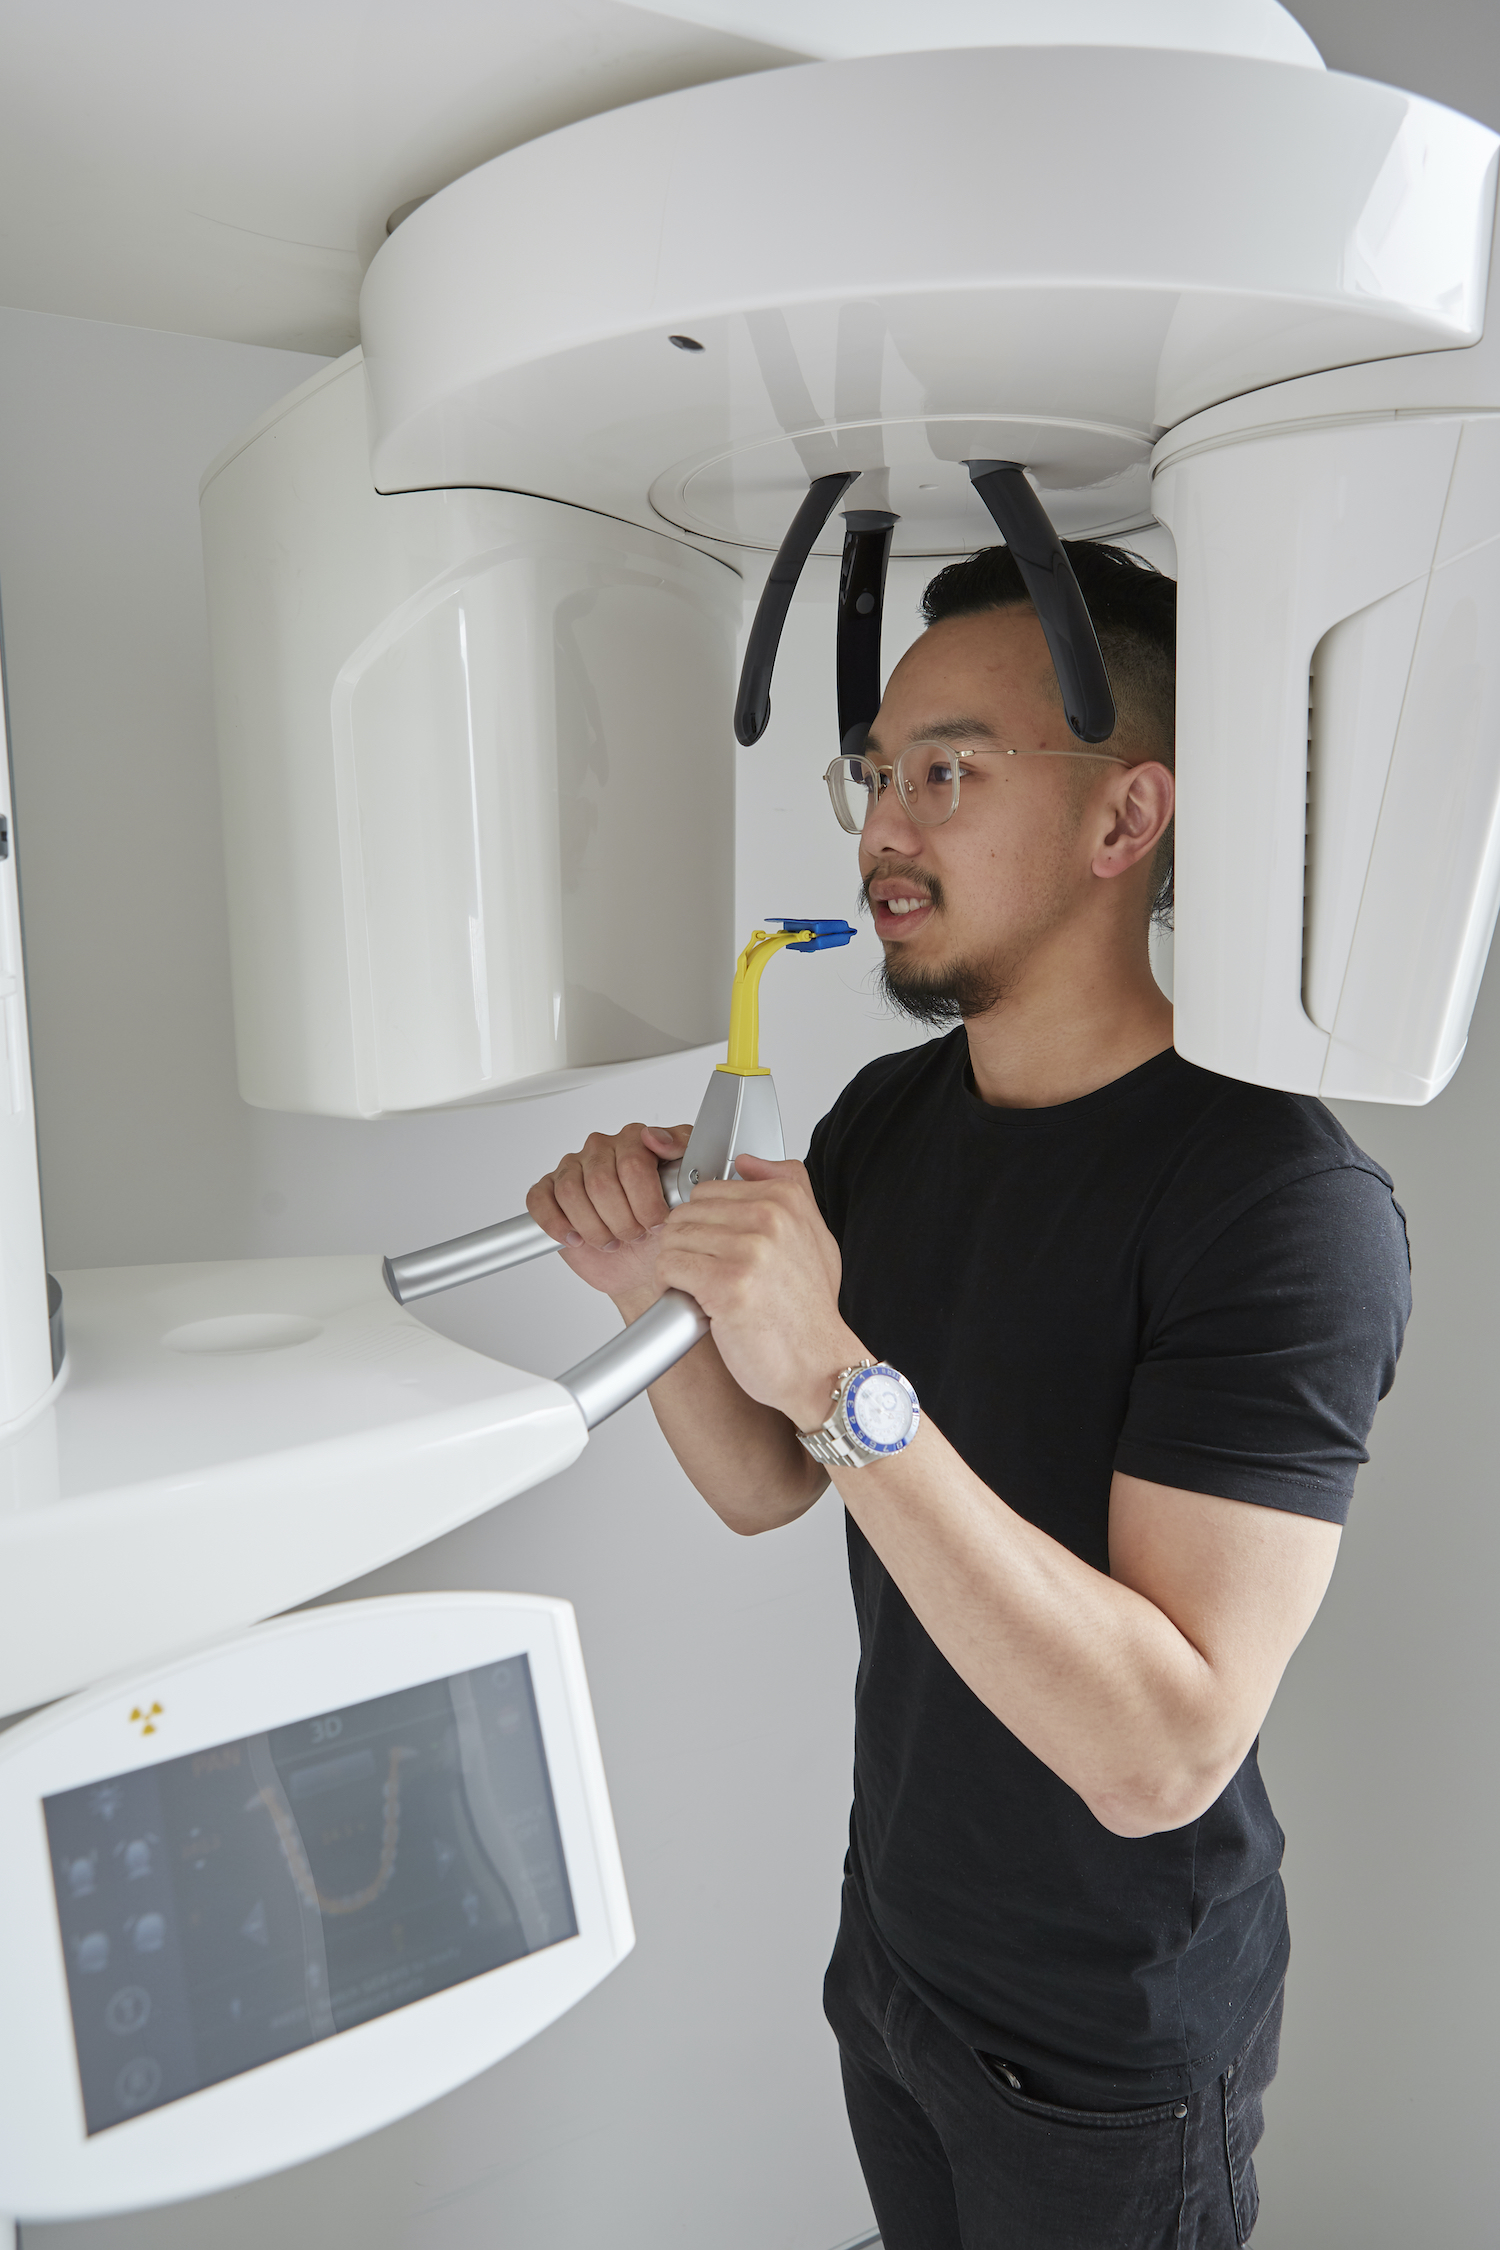 Patient getting an xray